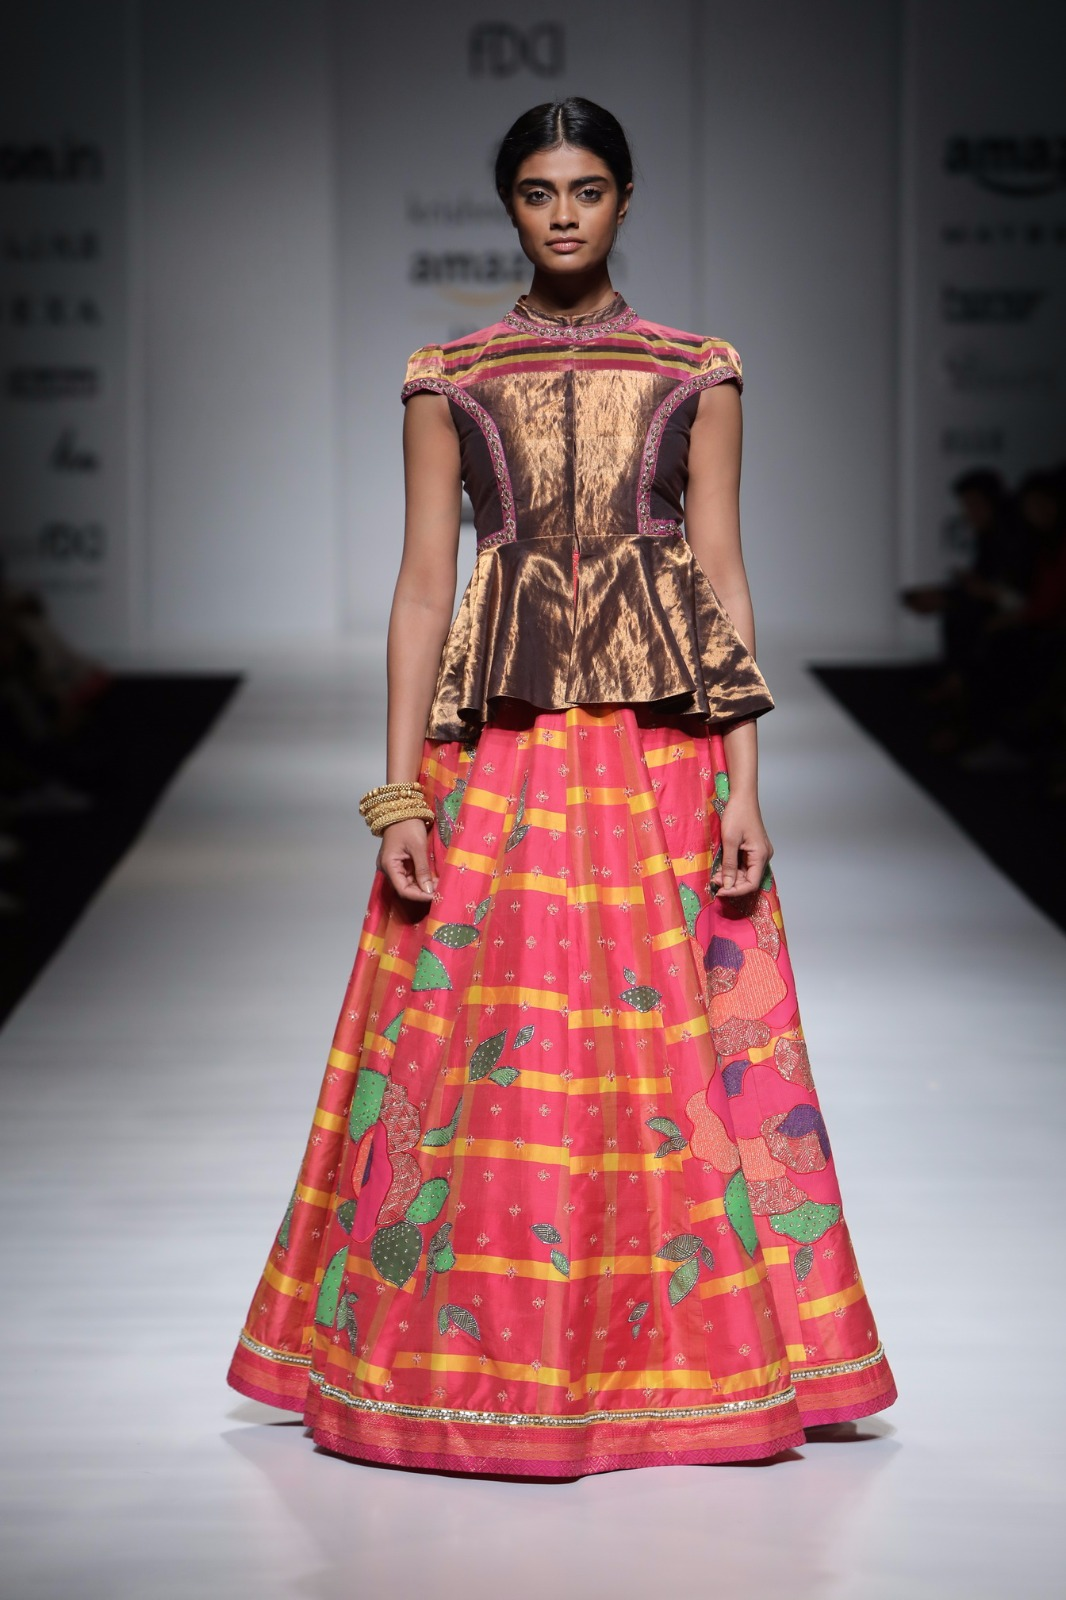 http://www.talksassy.com/wp-content/uploads/2017/03/Amazon-India-Fashion-Week-Autumn-Winter-2017-25.jpg